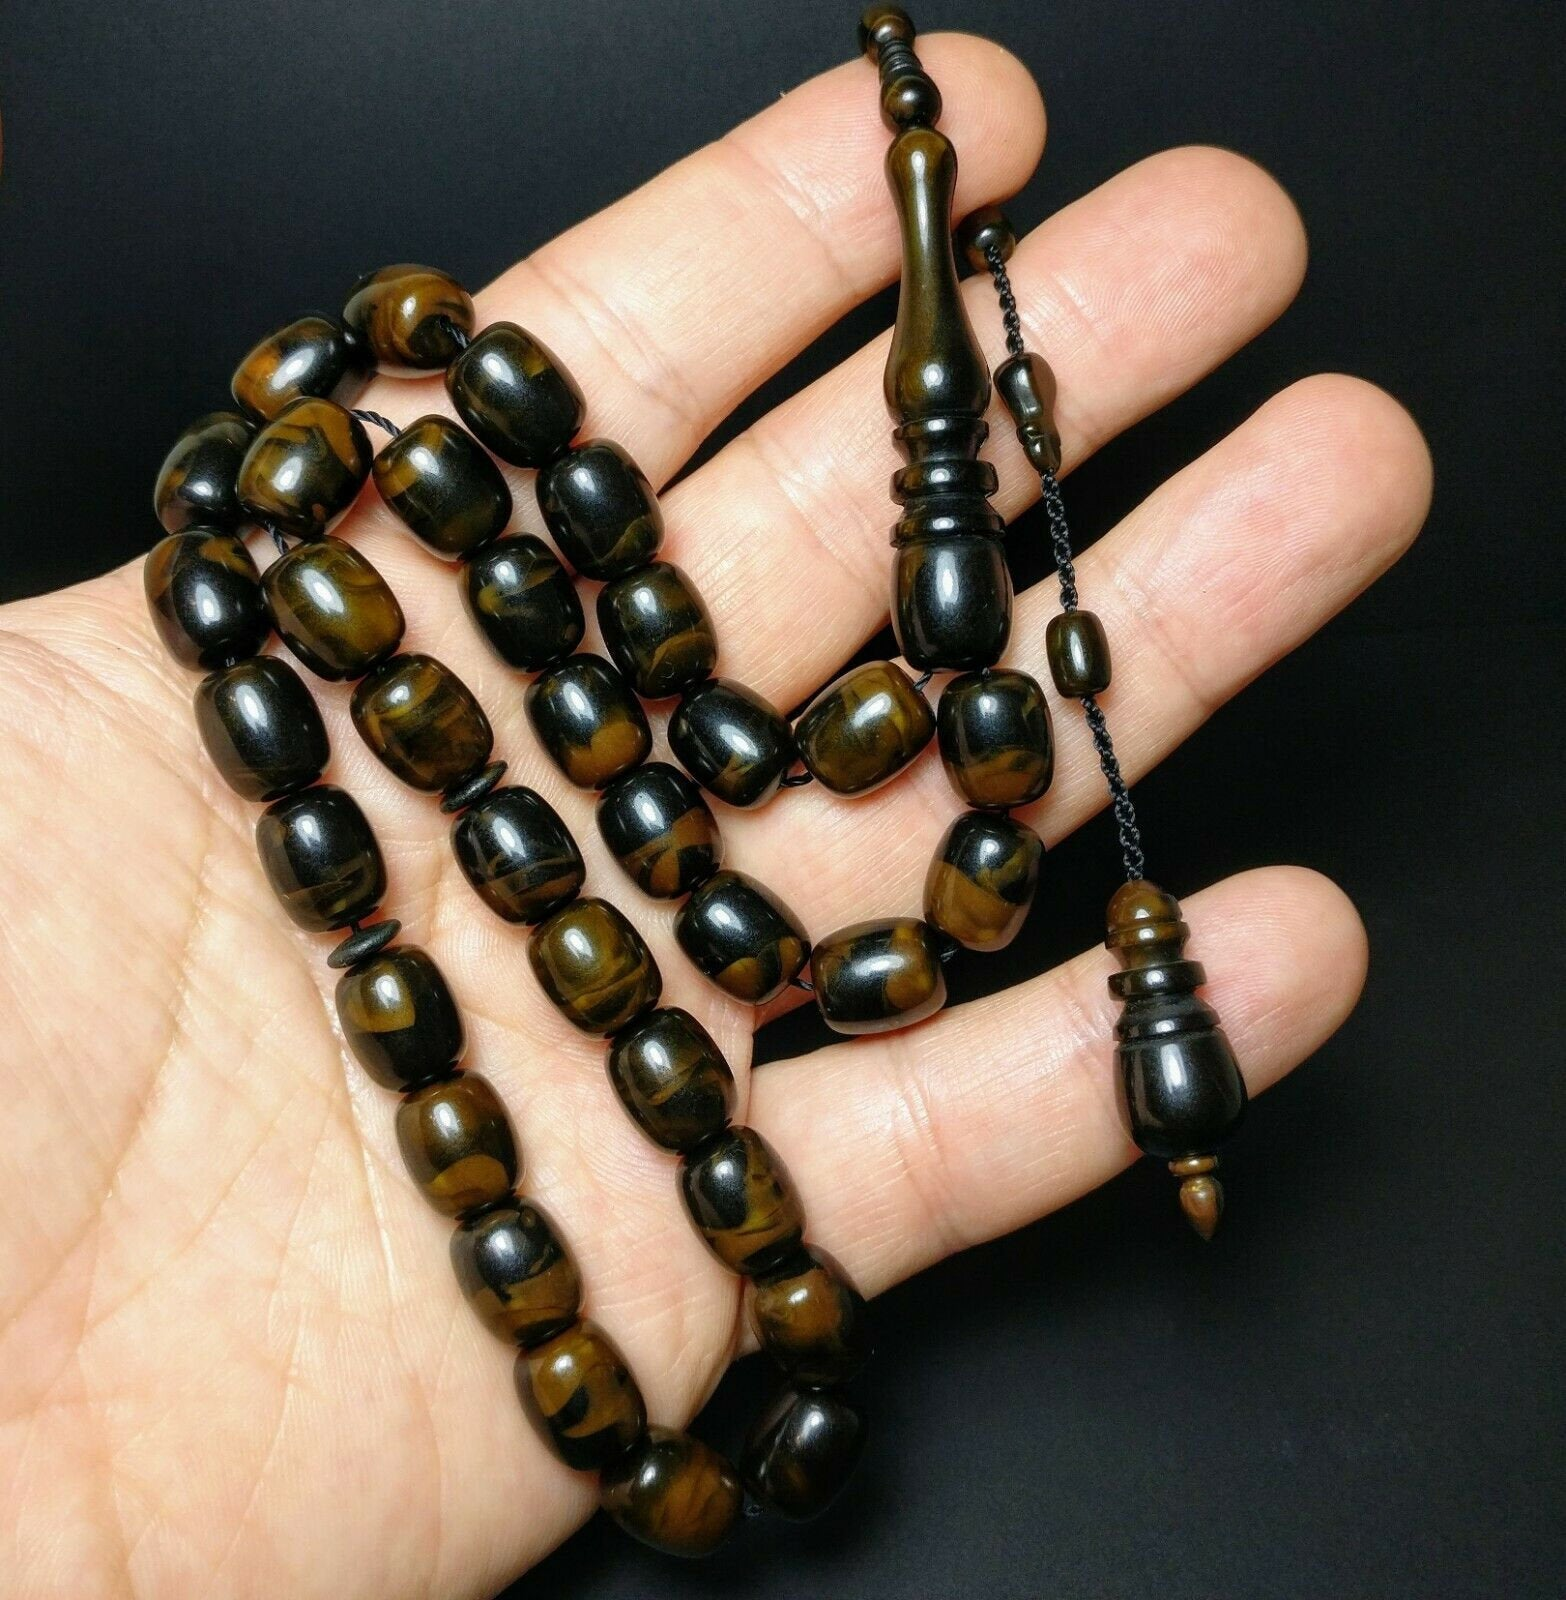 New Stylish Big Prayer Beads Tesbih Muslim Rosary Islam Tasbih Tasbeeh Turkish Misbaha Subha 318